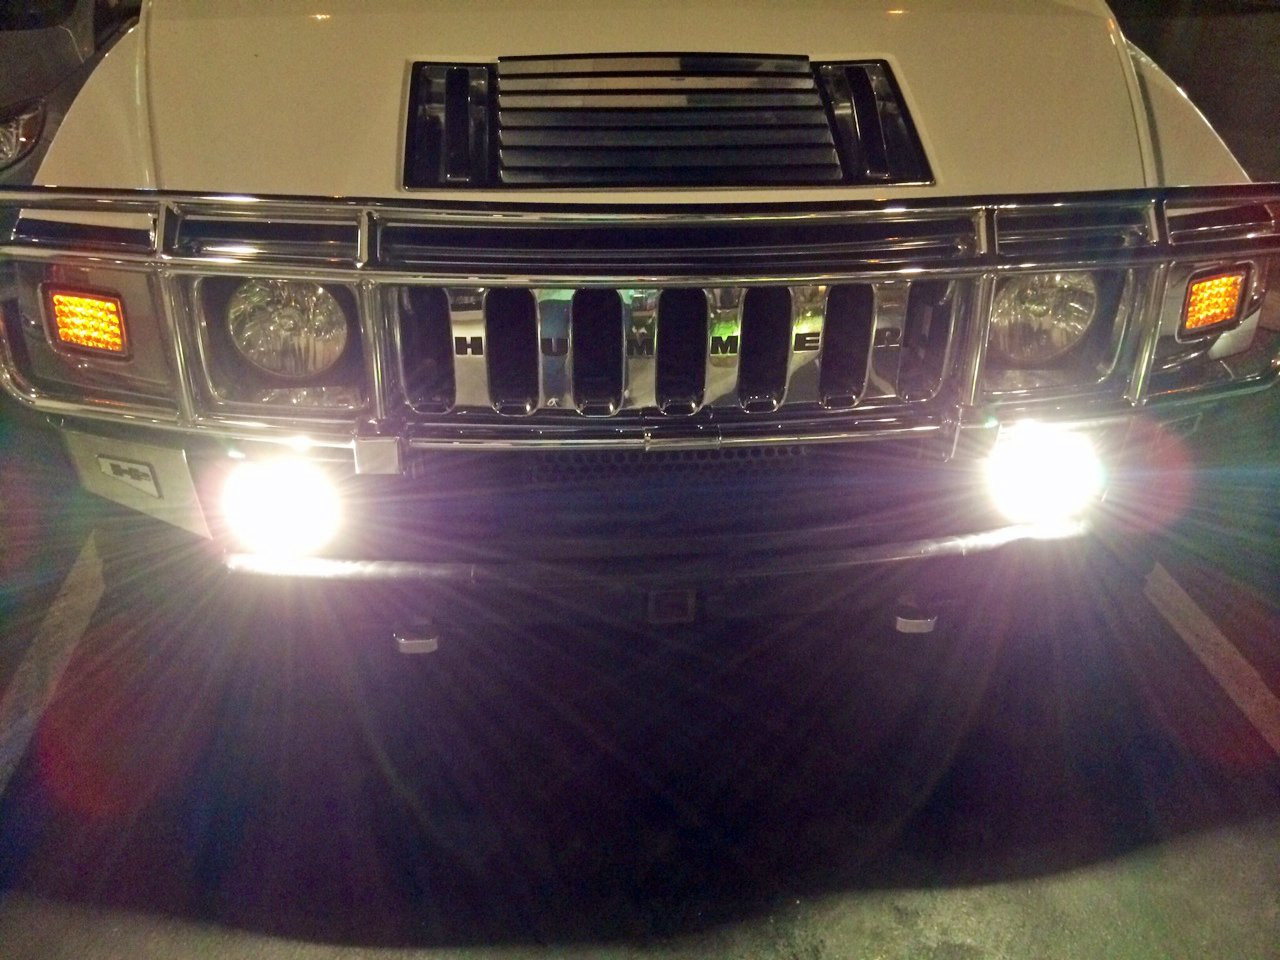 100w Super White Xenon Gas Filled H13 HIGH//Low Beam Light Bulbs for 05-12 Ford Mustang// 07-12 GMC Yukon // 06-10 Hummer H3// 07 08 09 10 11 Jeep Compass// Including Denali and XL